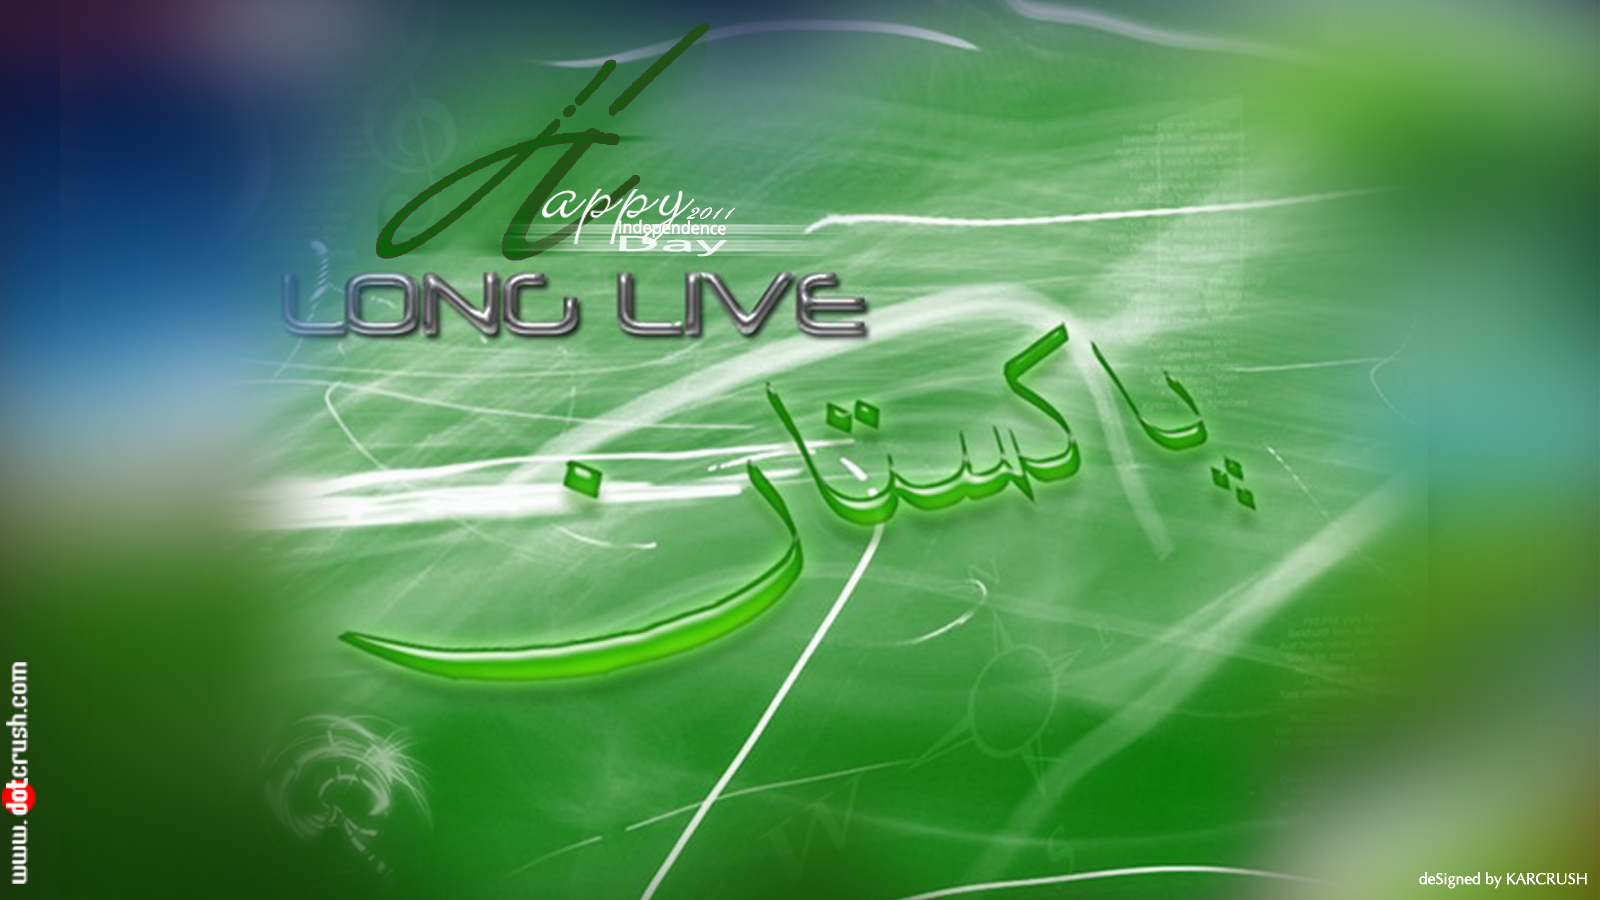 http://4.bp.blogspot.com/-A9gbOOk5pxU/TkThN0mKUFI/AAAAAAAAAvA/cIGG_Jq8MO0/s1600/pakistan-independece-day-14-august-2011-backgrounds-wallpapers-31.jpg